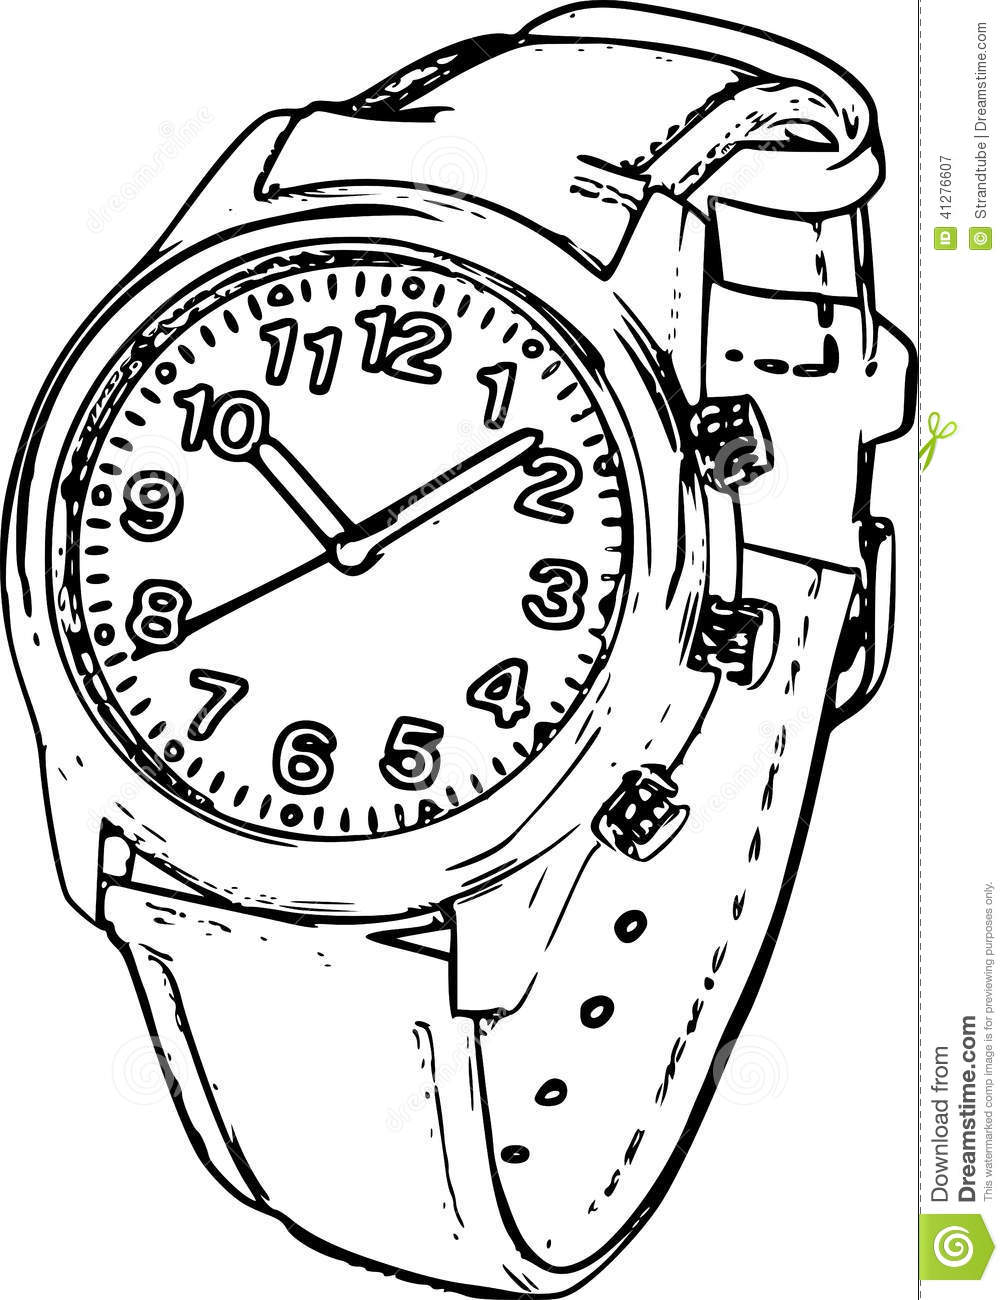 Line Art Illustration : Wrist watch sketch stock illustration image of object